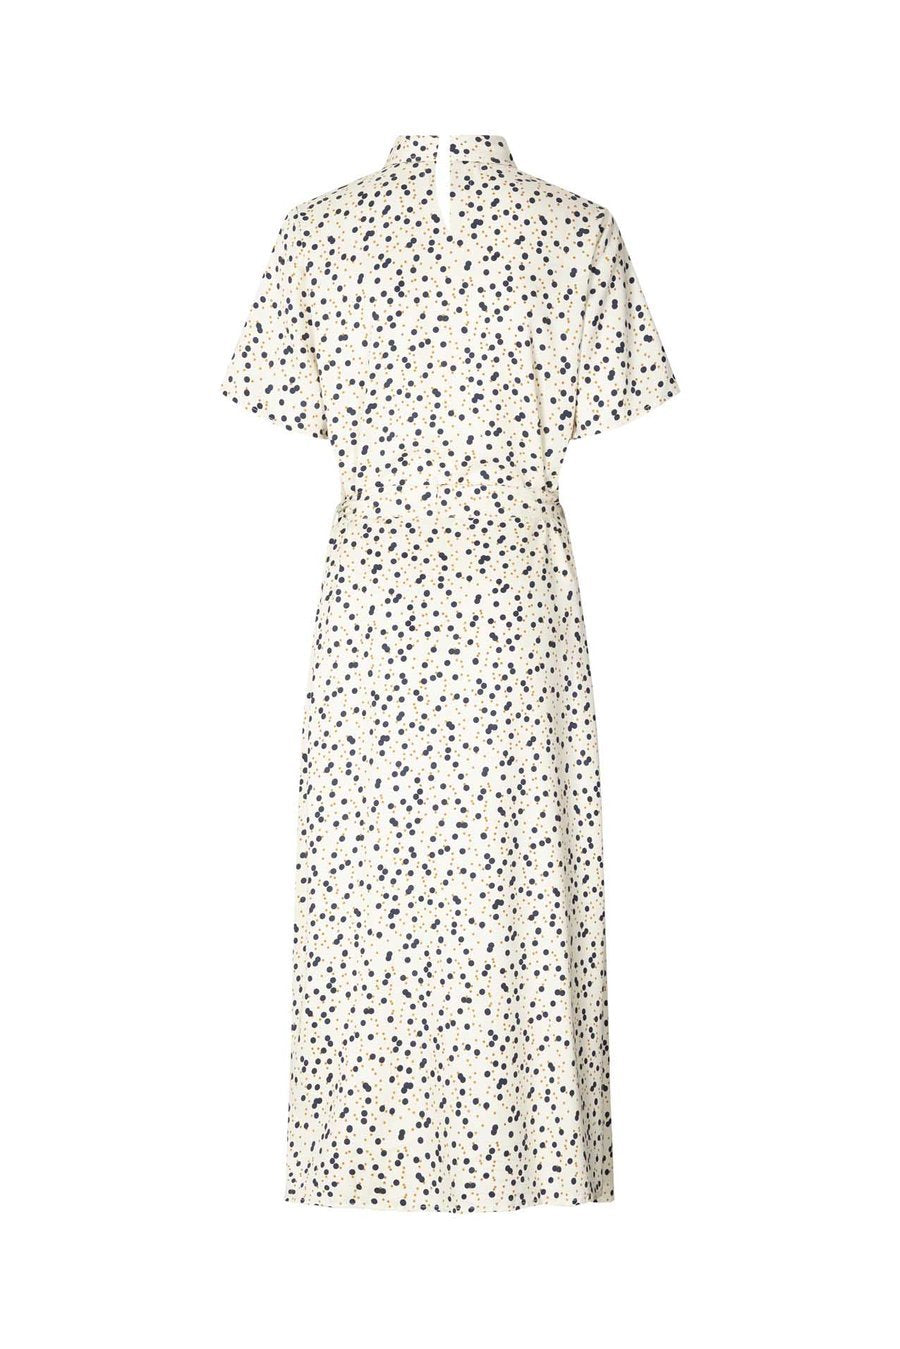 Lollys Laundry - blake dress dot print